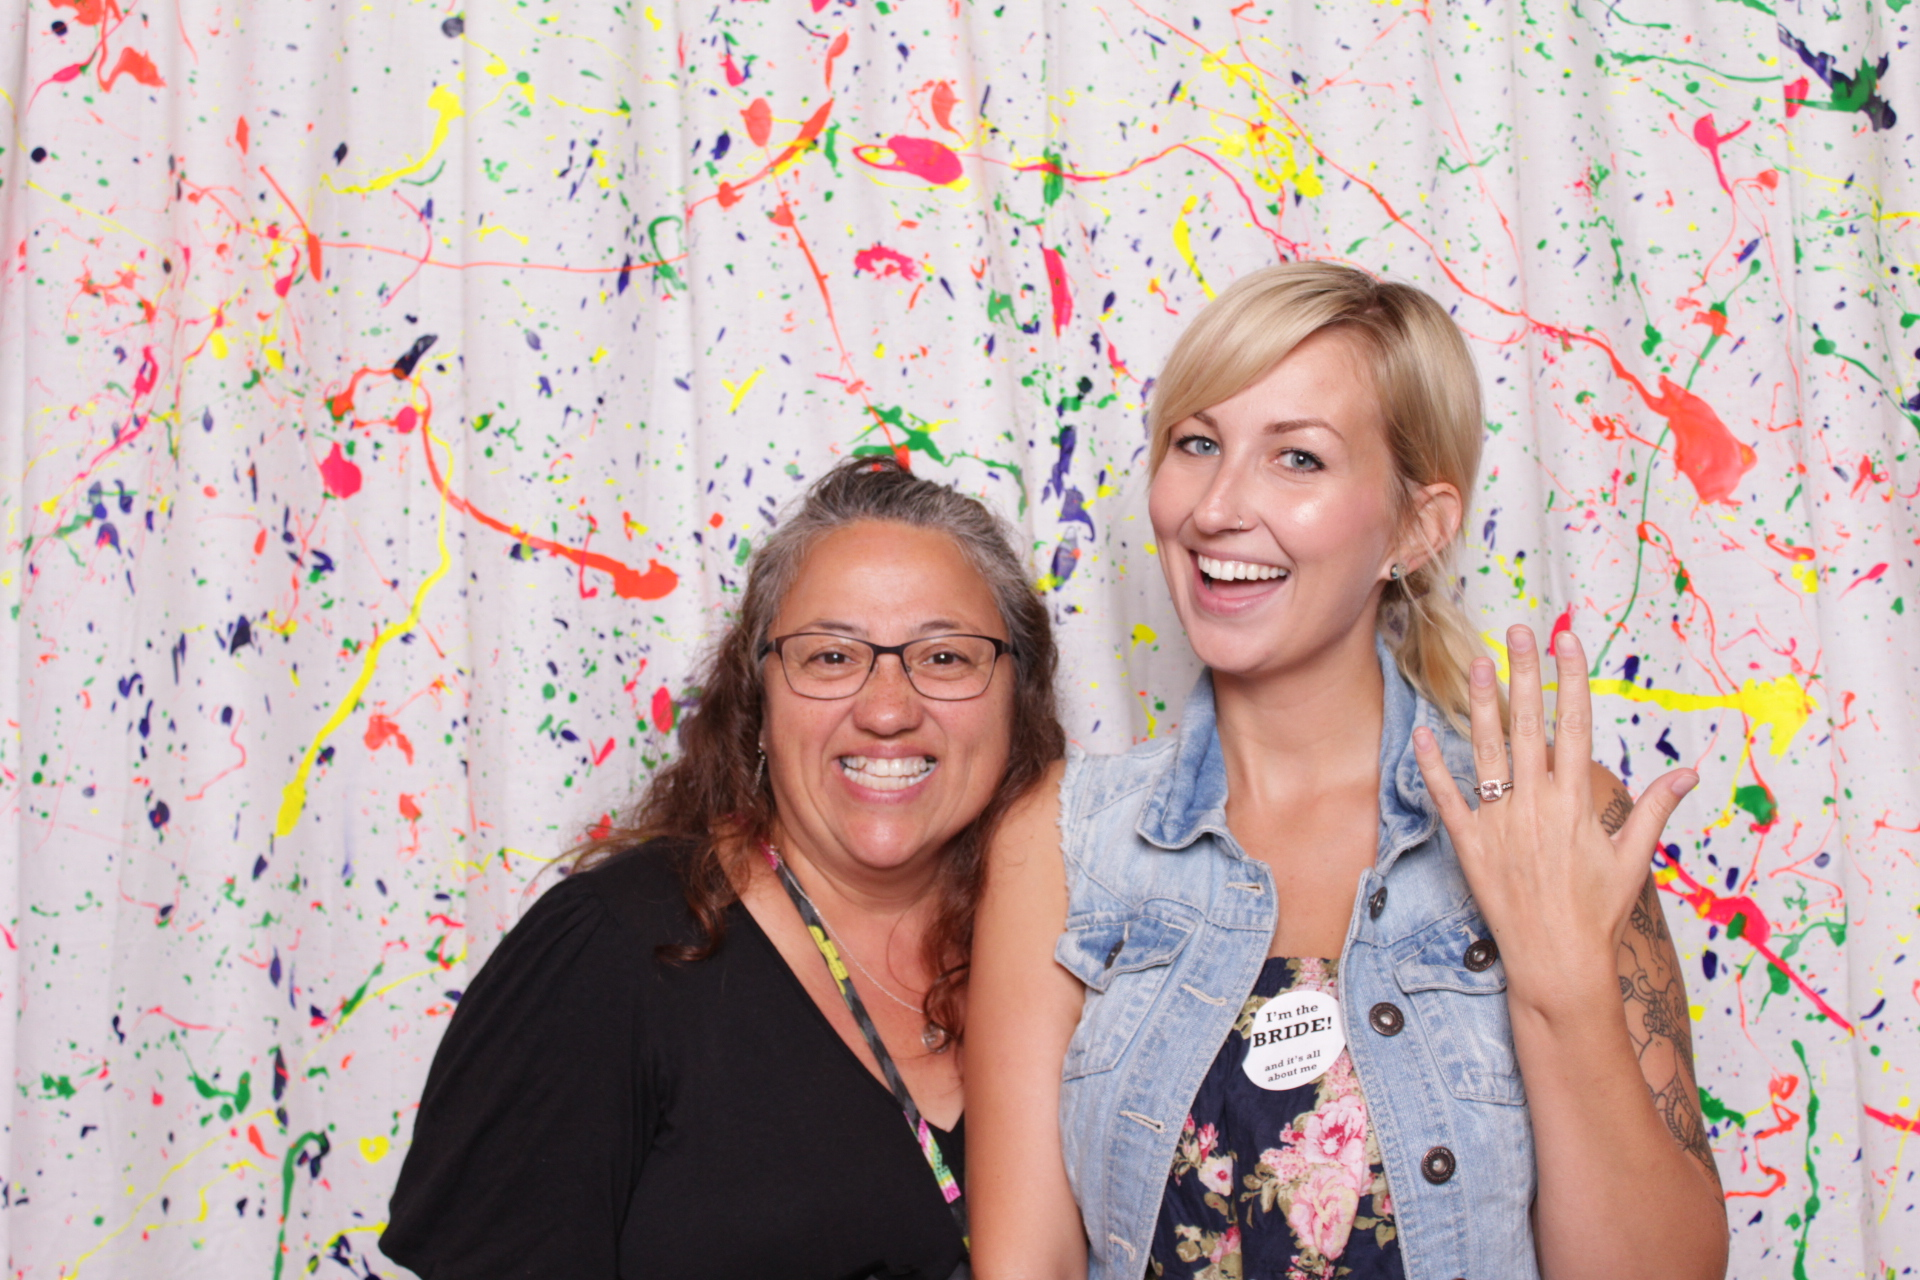 photo booth with custom paint splatter backdrop